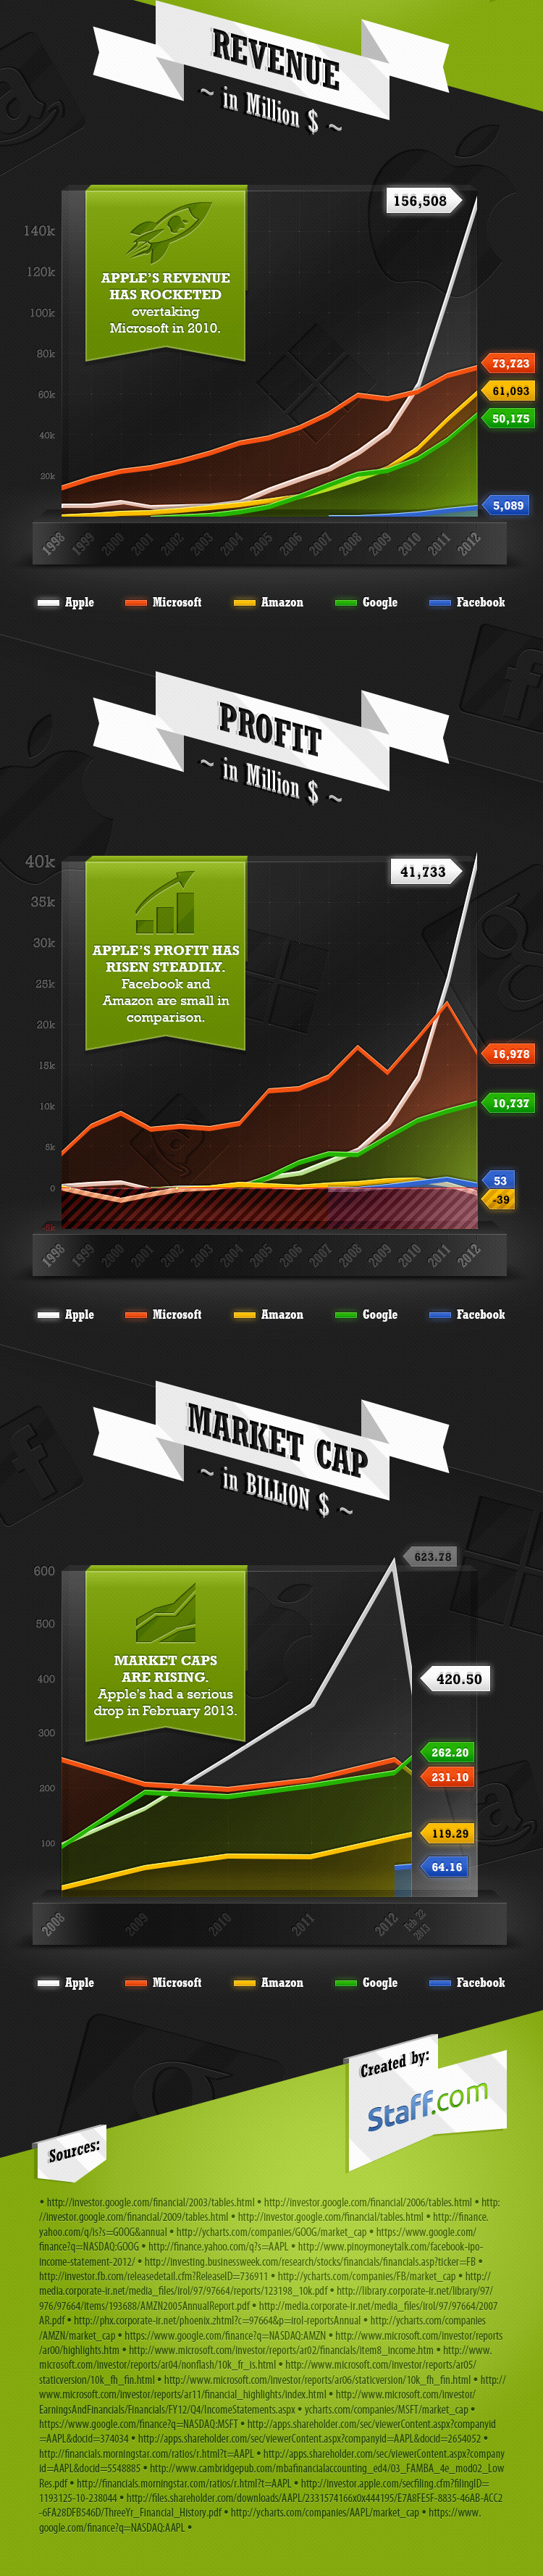 Staff-infograph_revenue-profit-tech-giants-b (1)